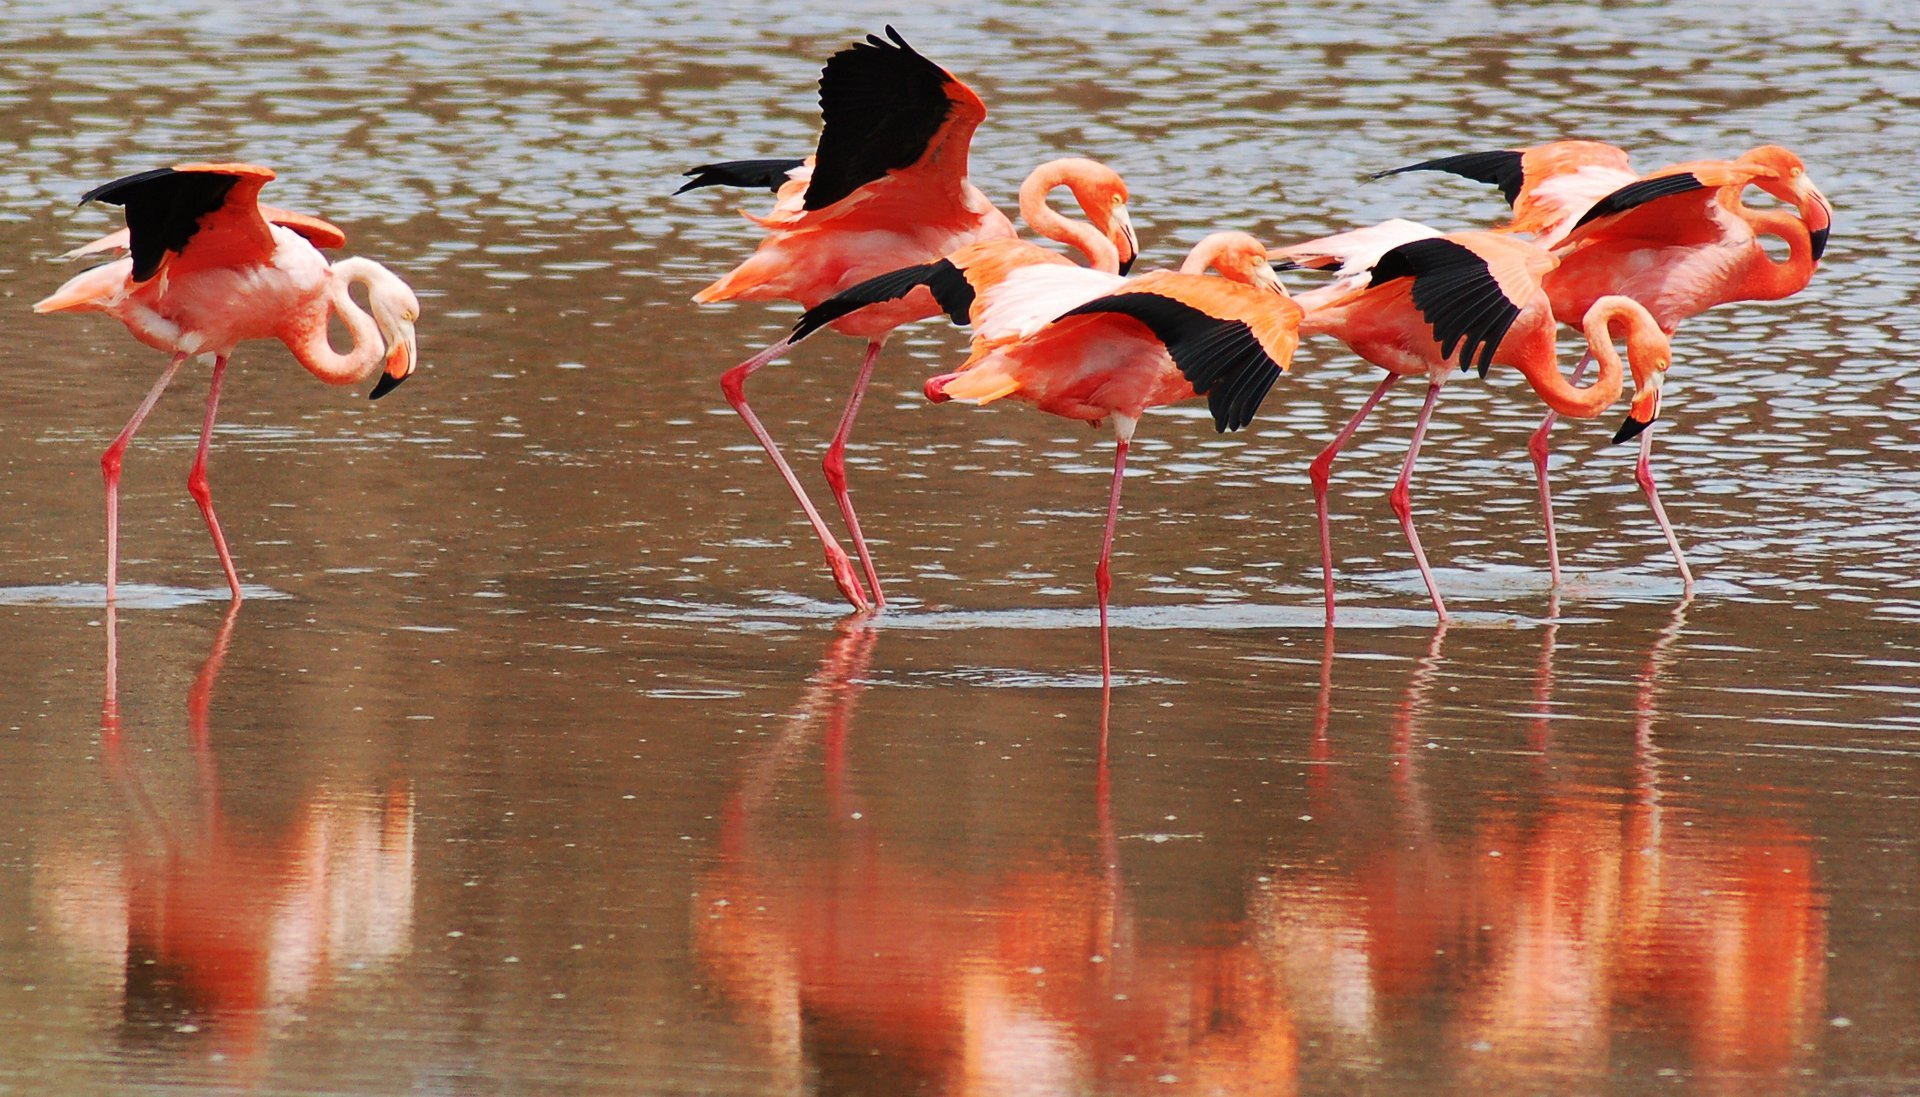 Galapagos Flamingos Courtship Dances in Galapagos Islands - Best Time